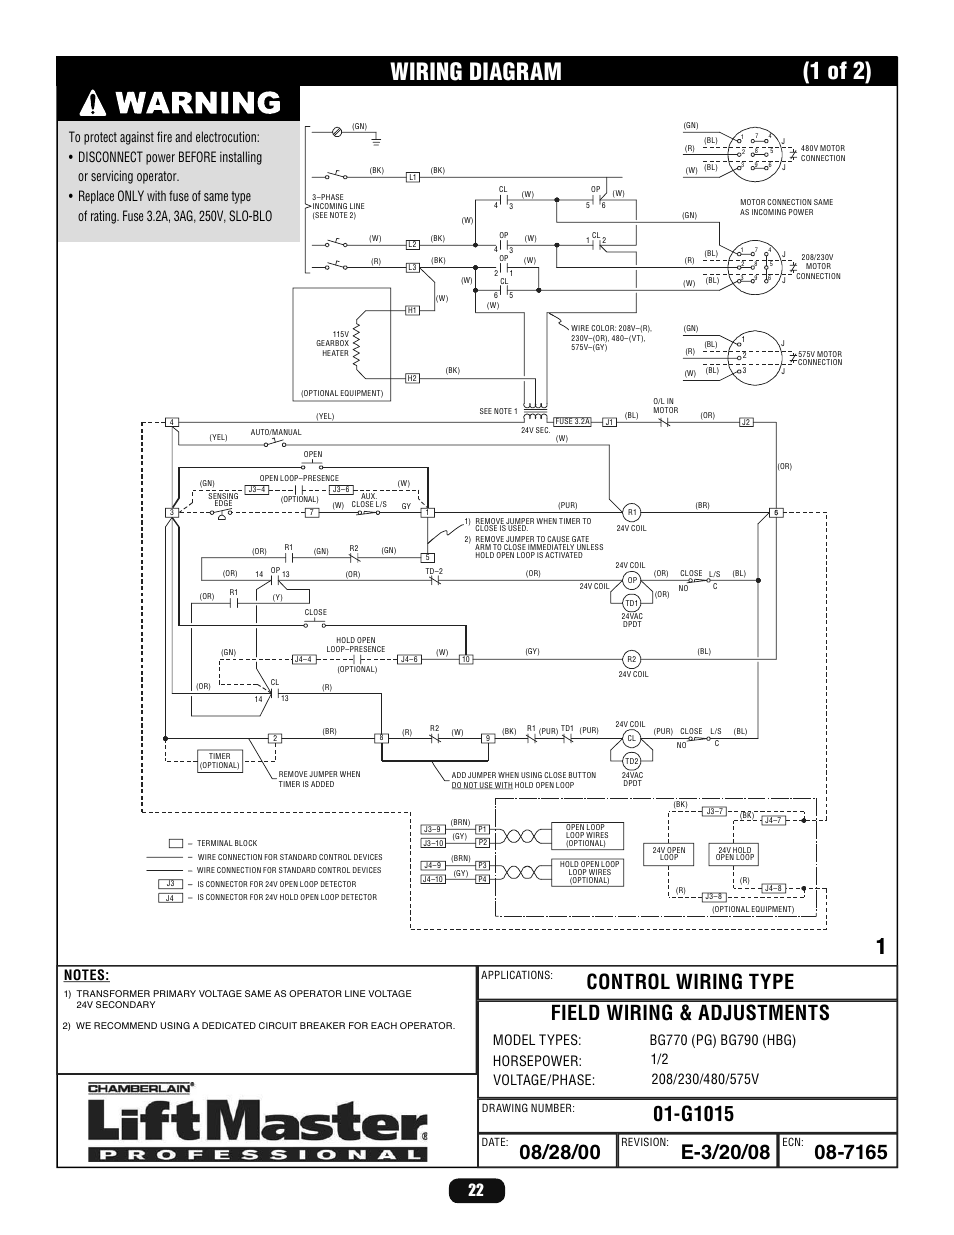 hight resolution of wiring diagram 1 of 2 liftmaster bg770 industrial duty singlewiring diagram 1 of